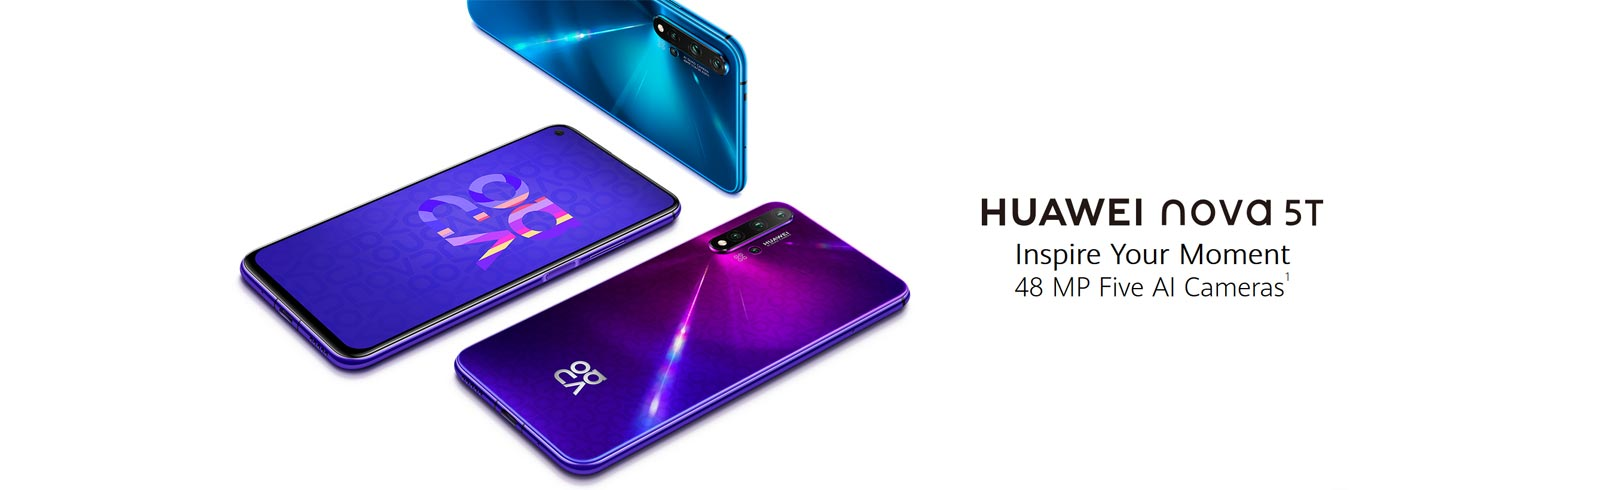 Huawei takes the wraps off the nova 5T